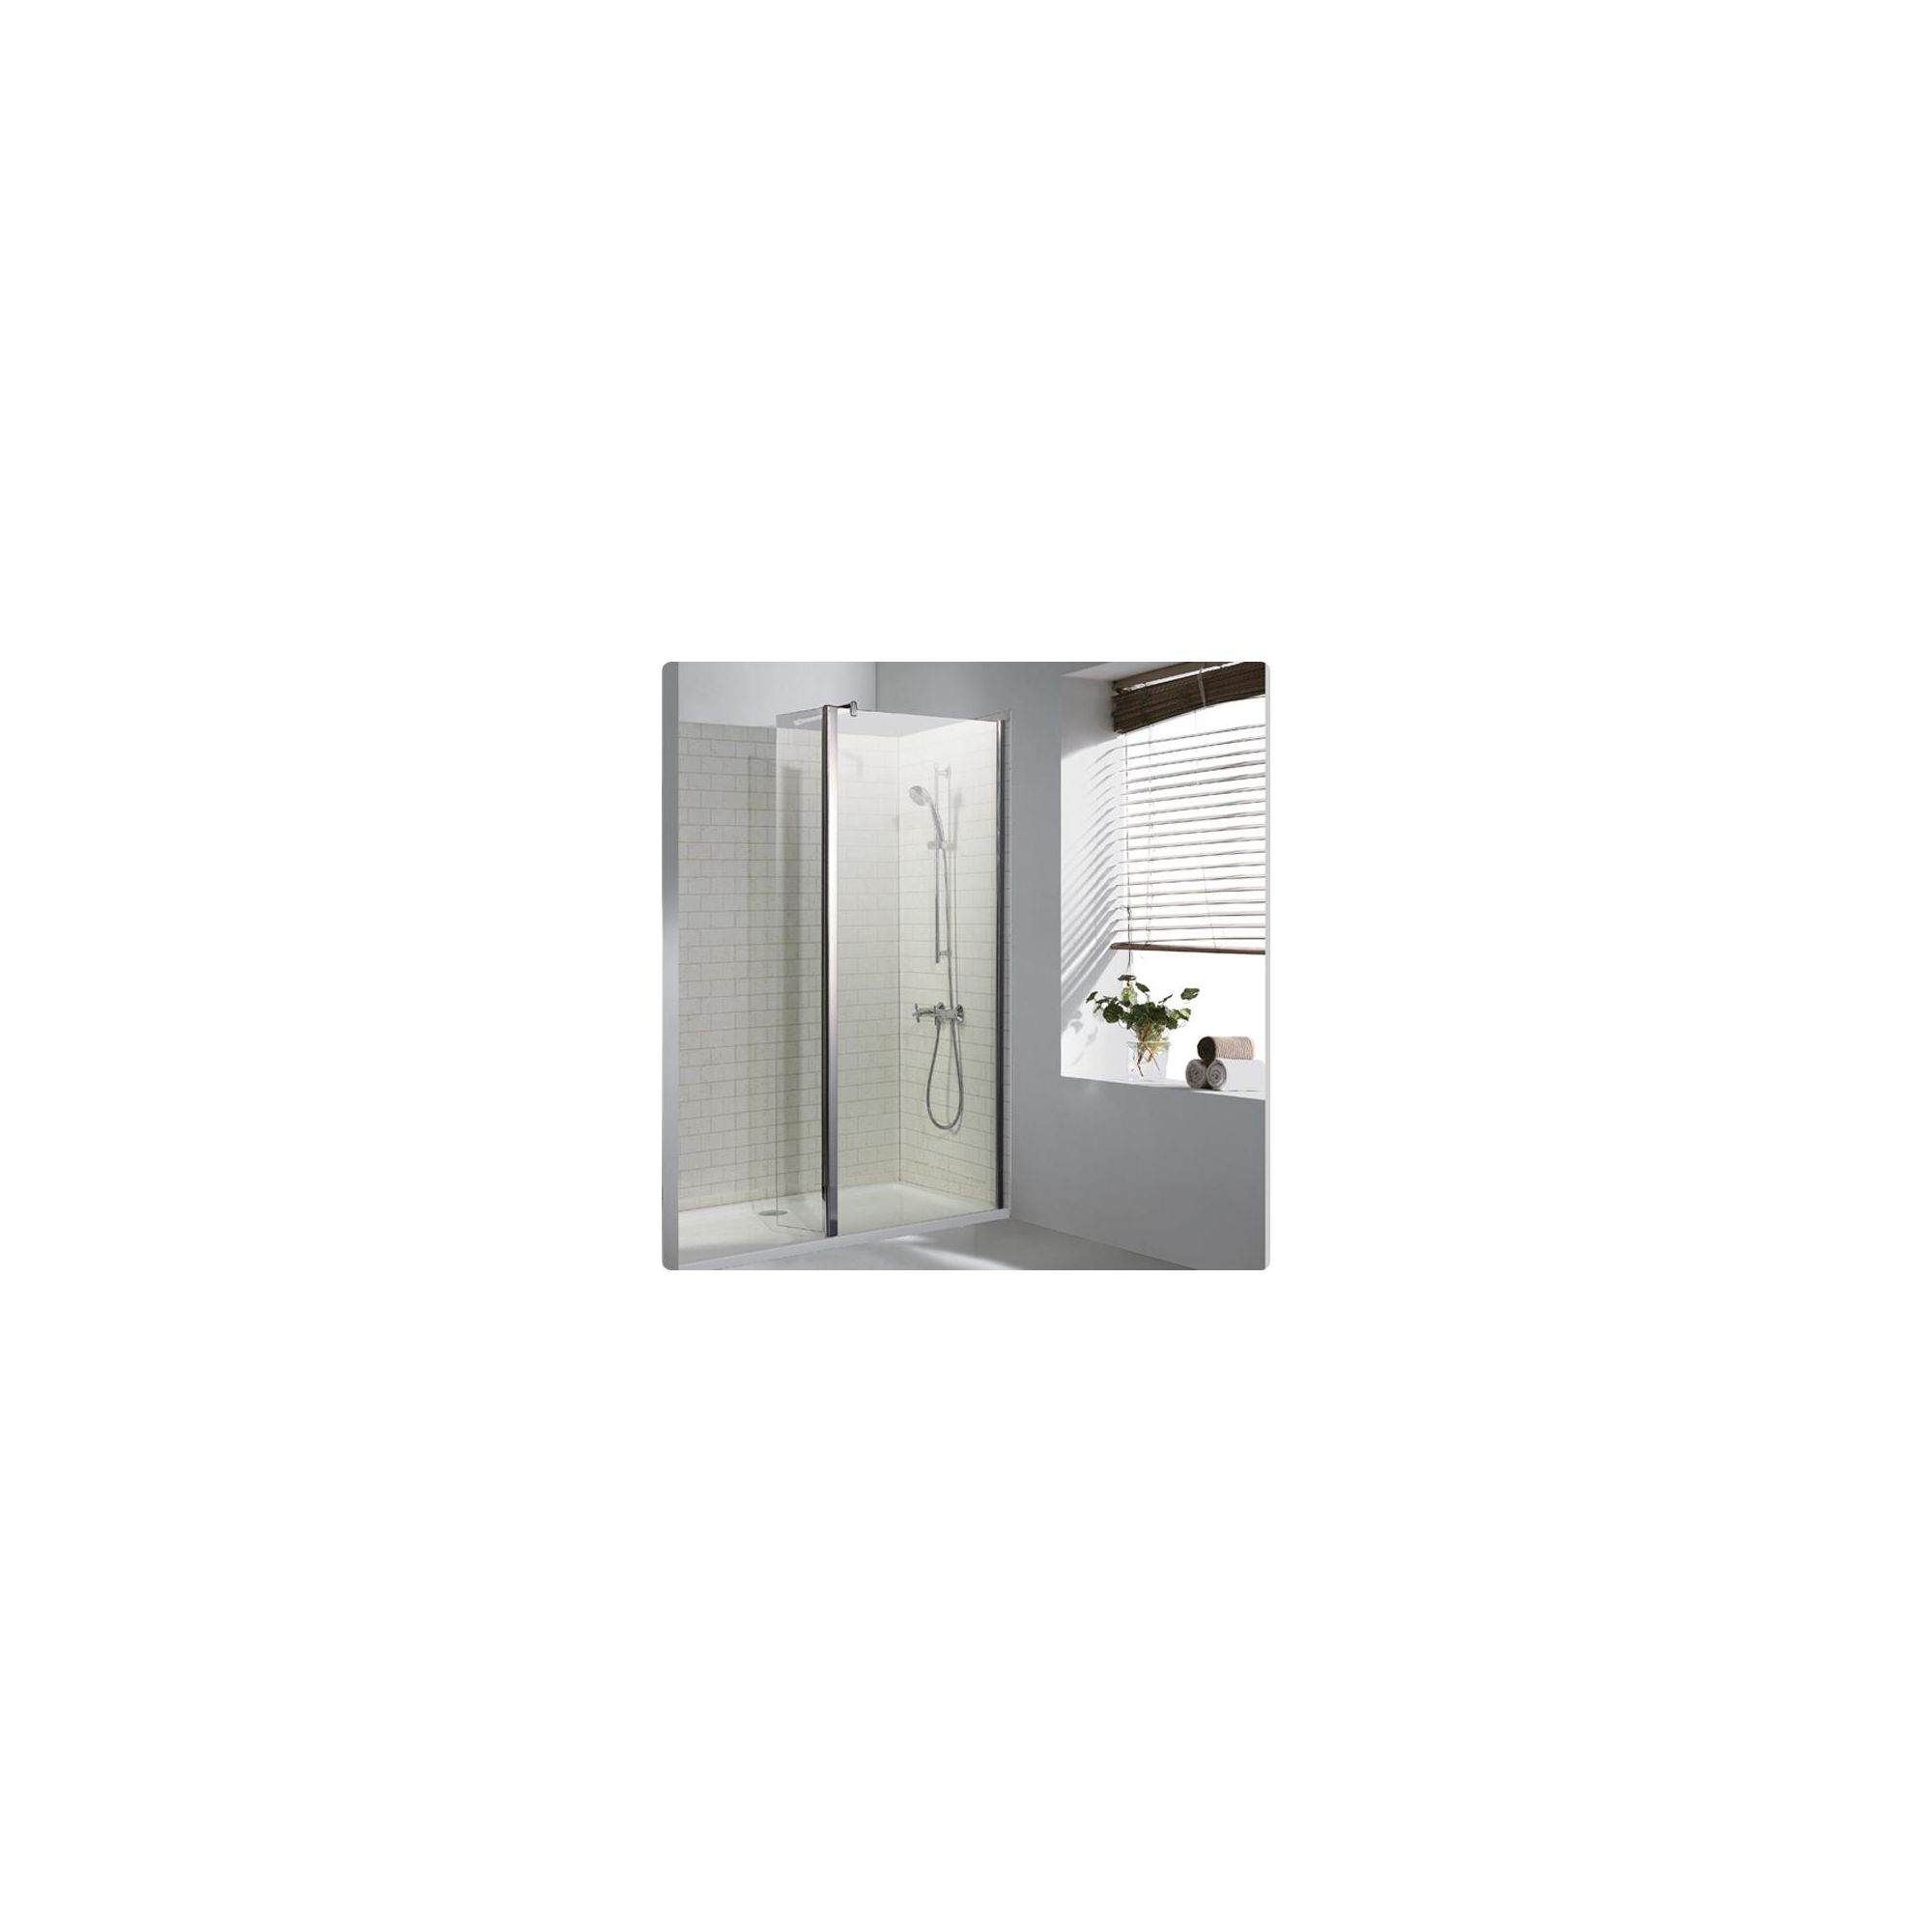 Duchy Choice Silver Walk-In Shower Enclosure 1400mm x 760mm (Complete with Tray), 6mm Glass at Tesco Direct